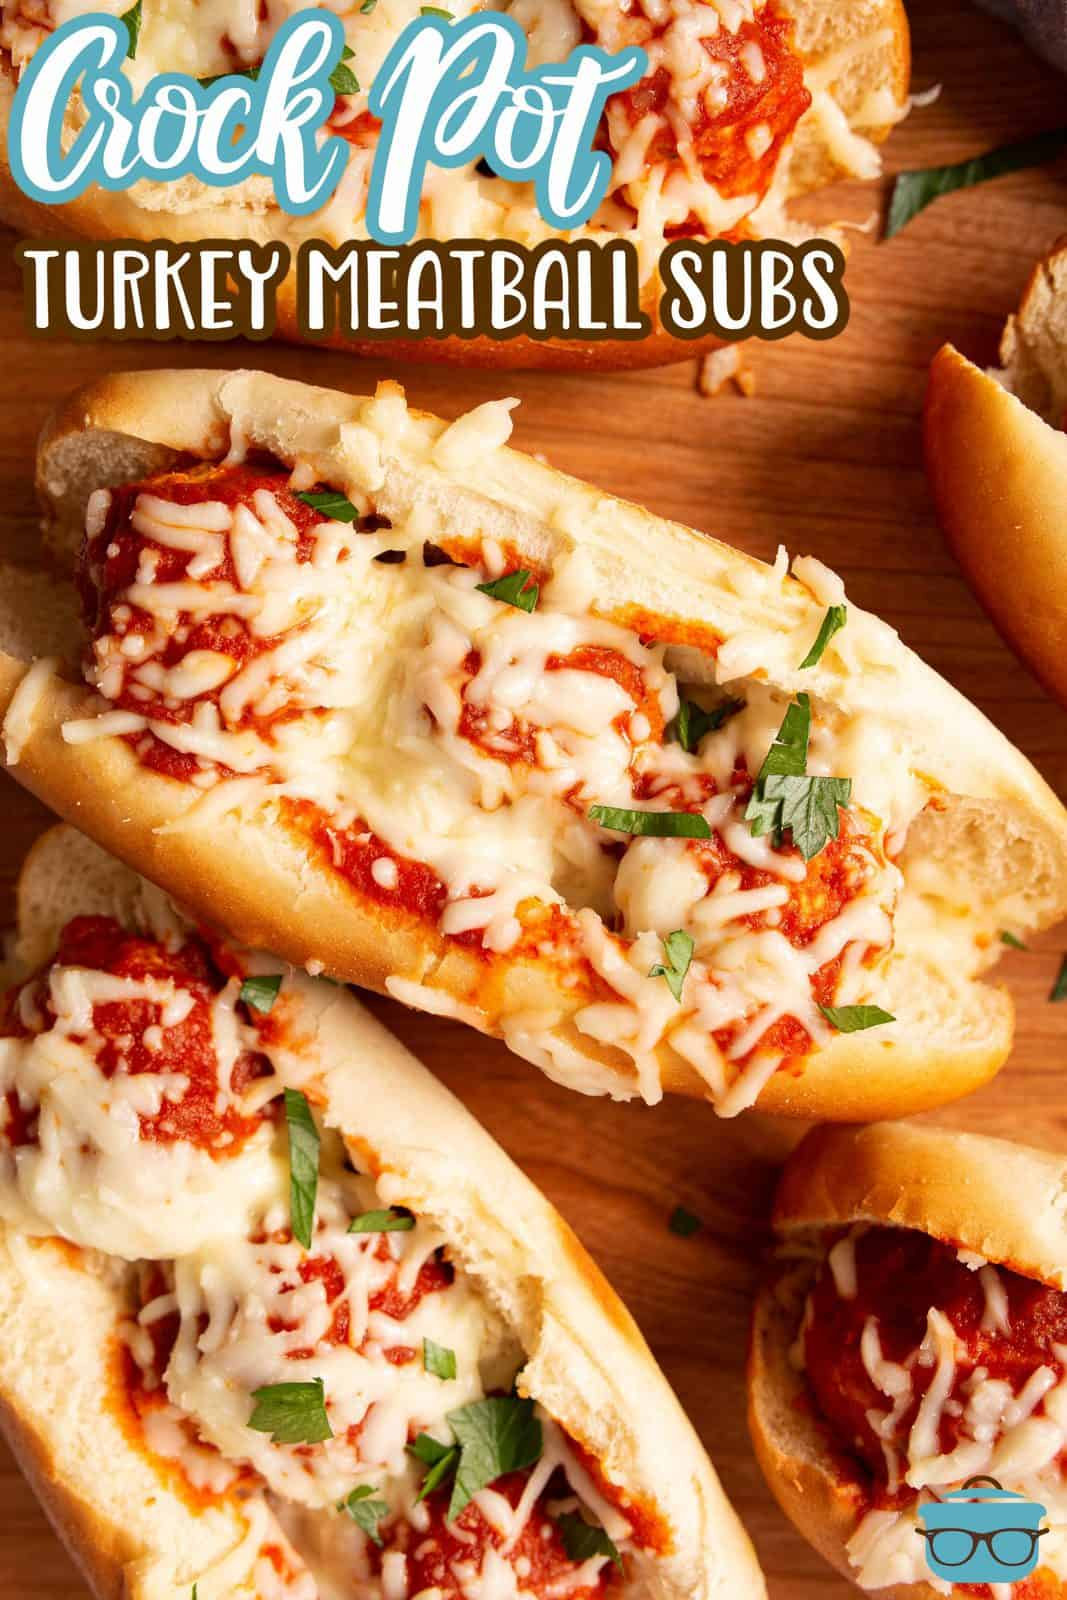 Pinterest image overhead of finished Crock Pot Turkey Meatball Subs with melted cheese and parsley.